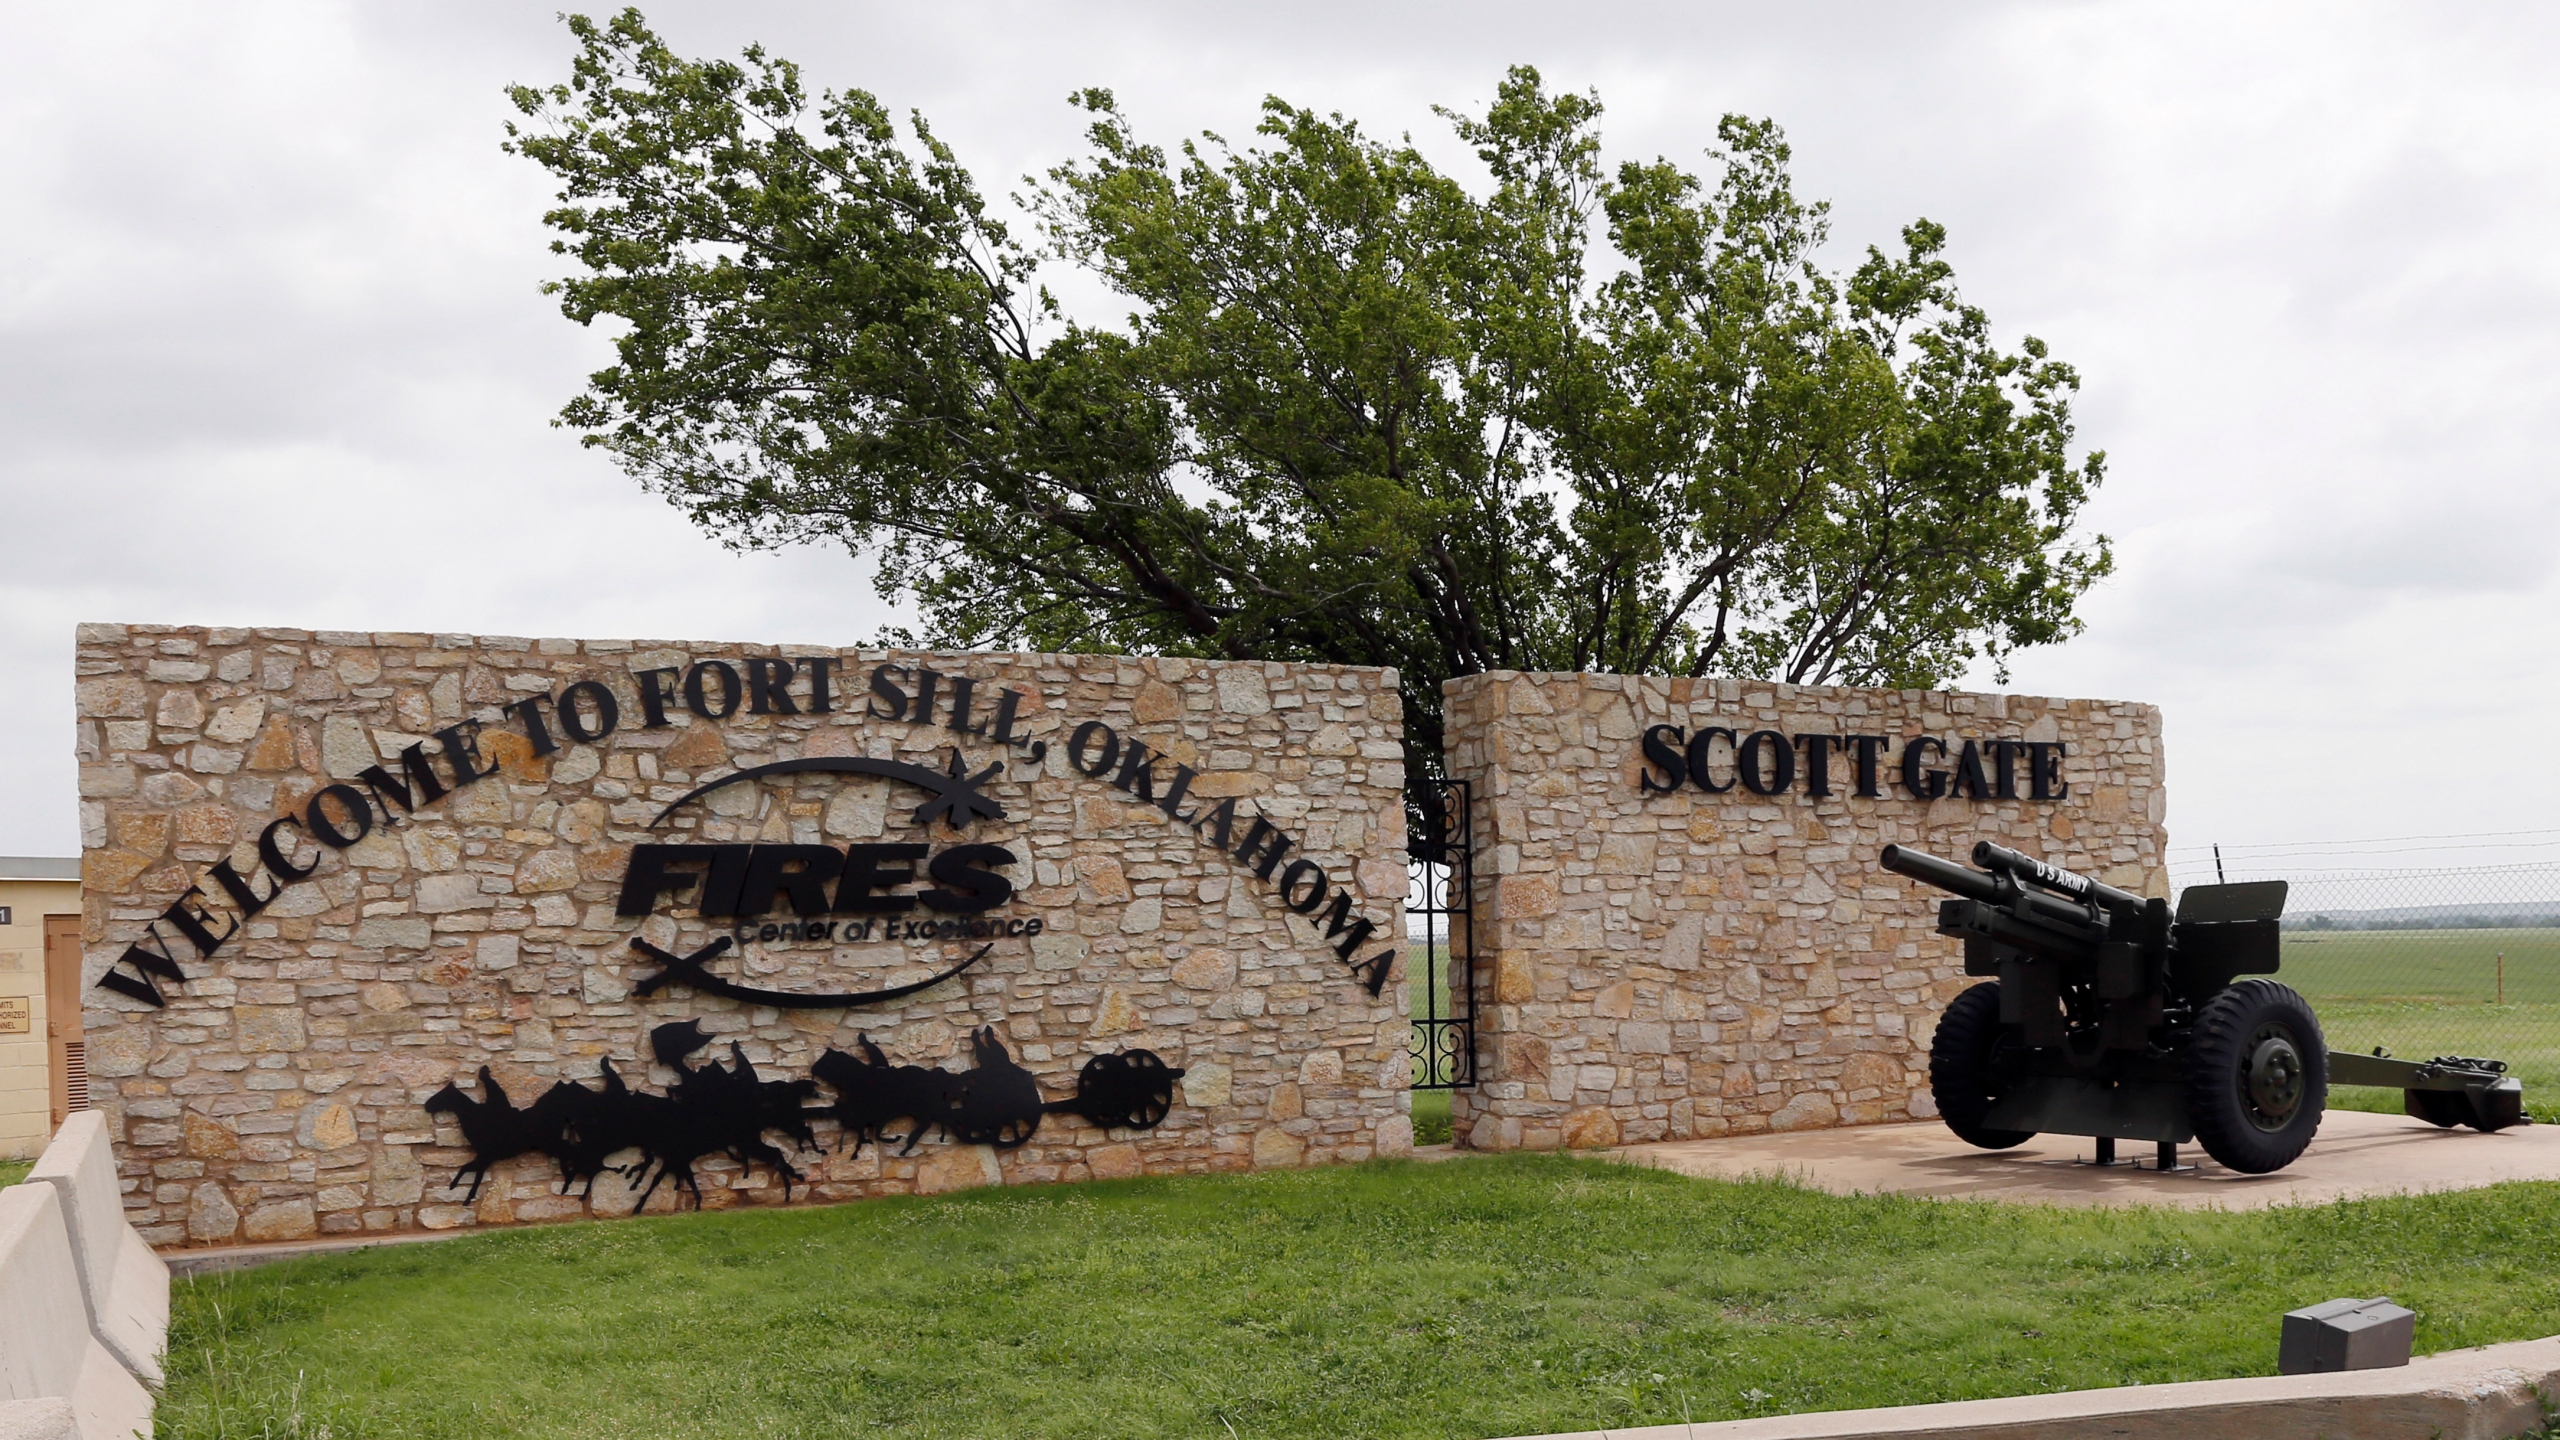 This June 17, 2014 file photo shows an entrance to Fort Sill near Lawton, Okla. (AP Photo/Sue Ogrocki, File)